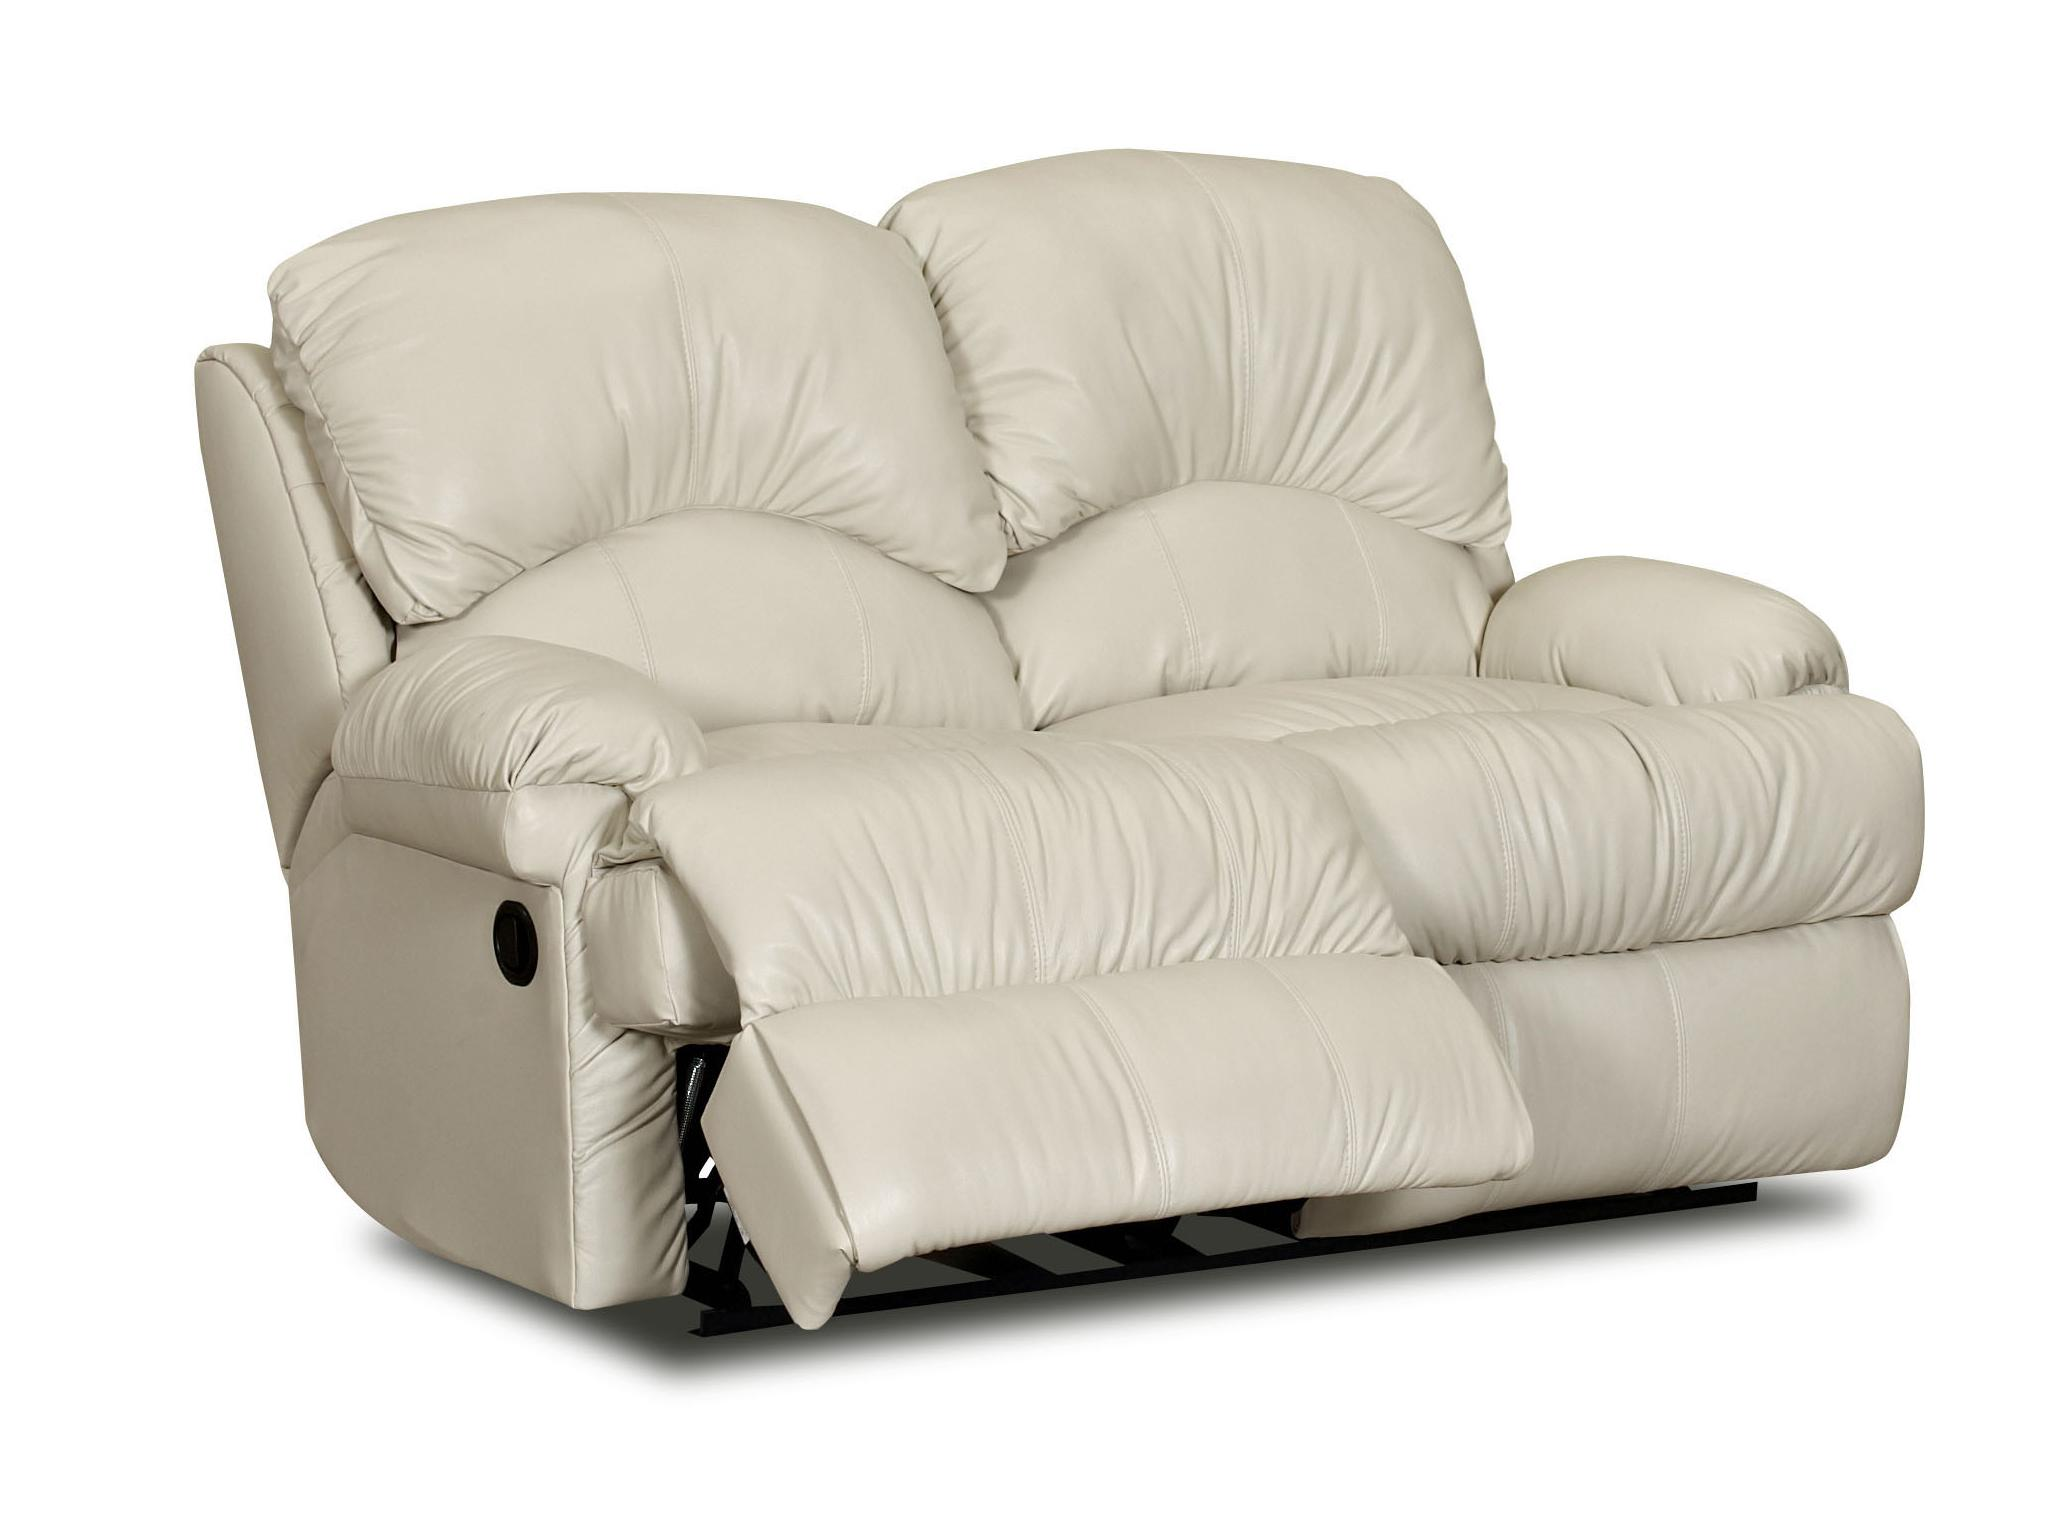 Phoenix Ii Casual Reclining Loveseat By Klaussner Wolf Furniture